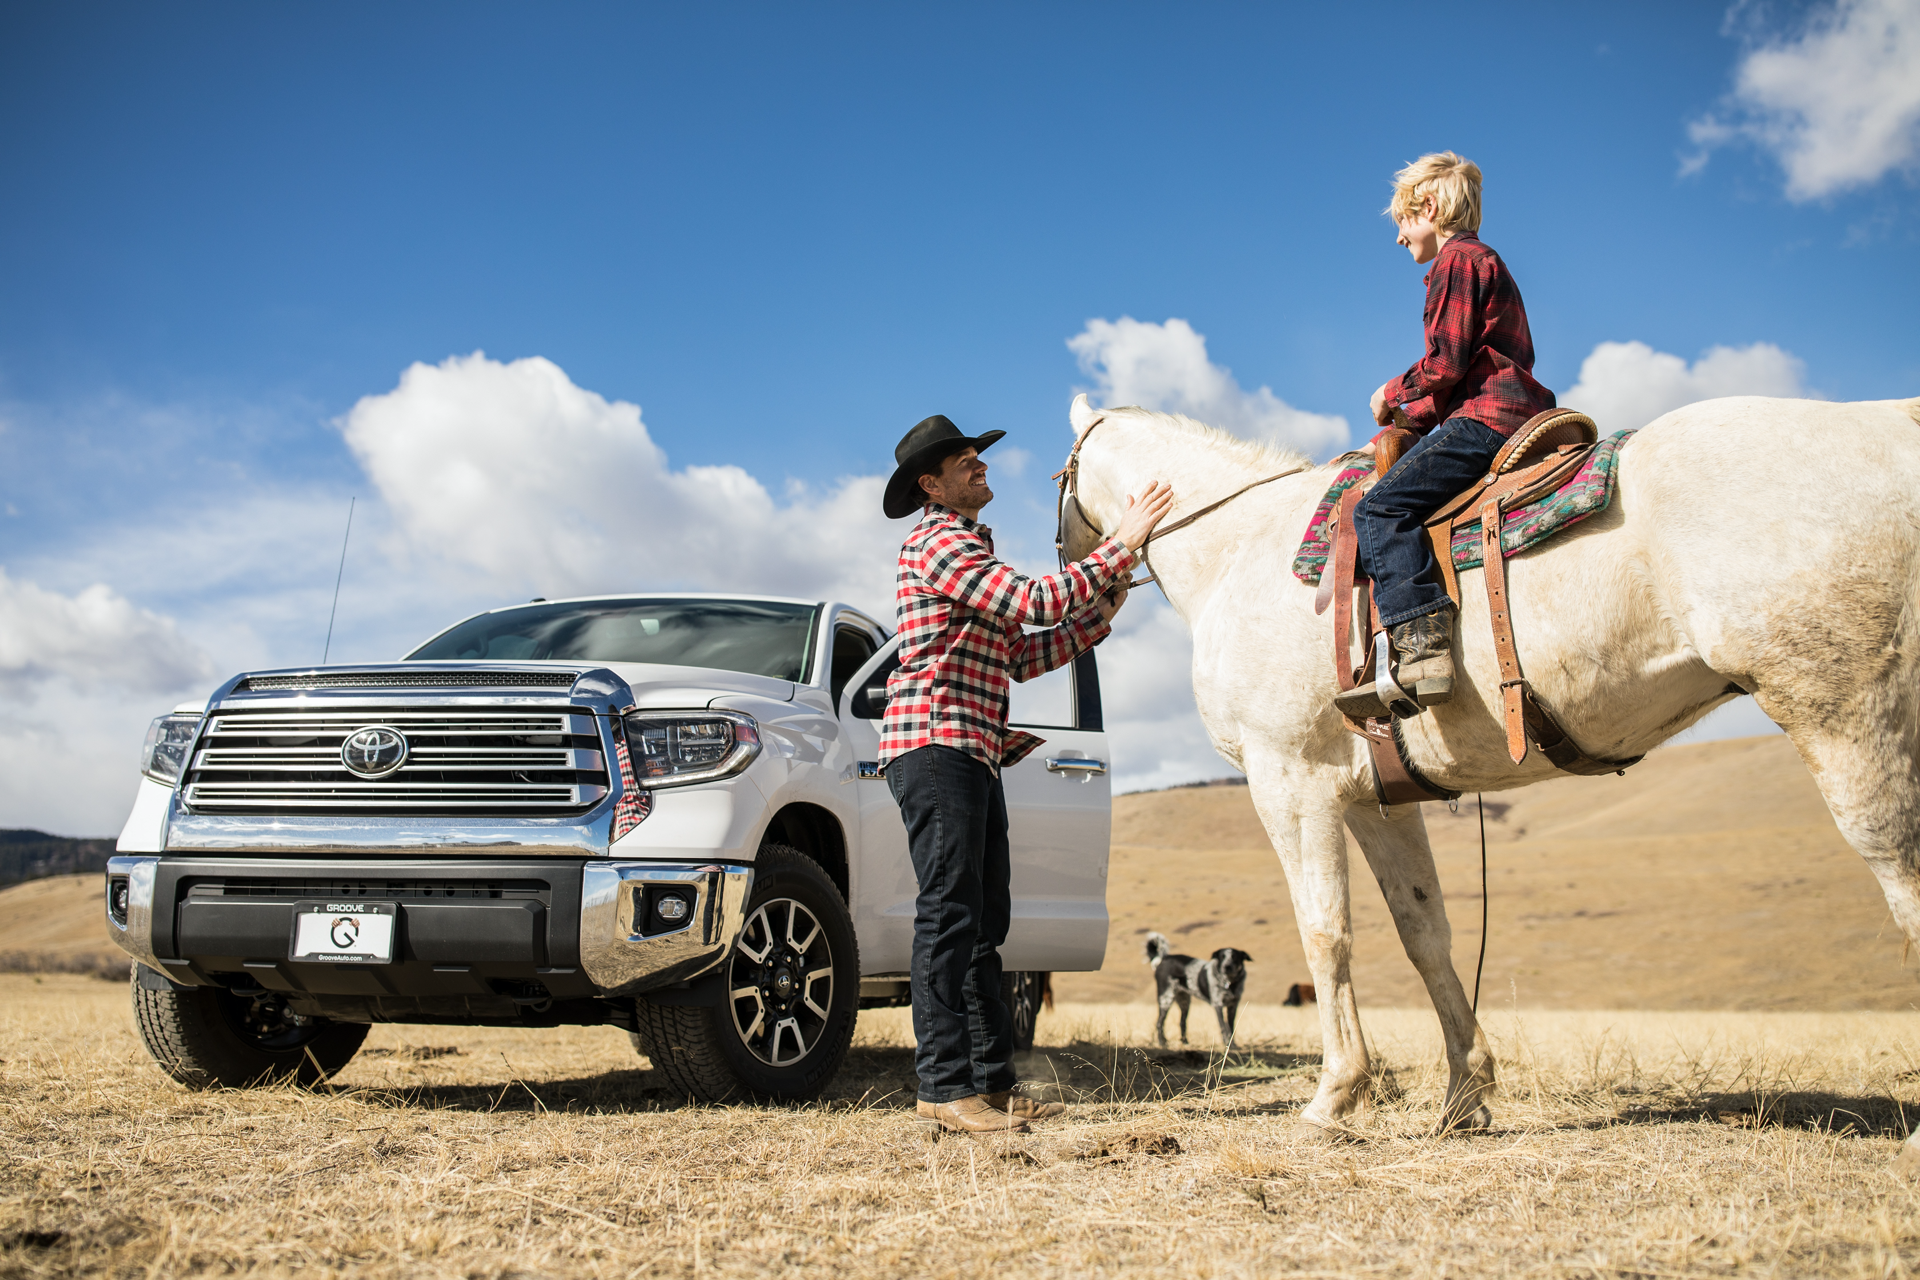 Groove-Toyota-truck-parked-next-to-man-and-child-on-horseback